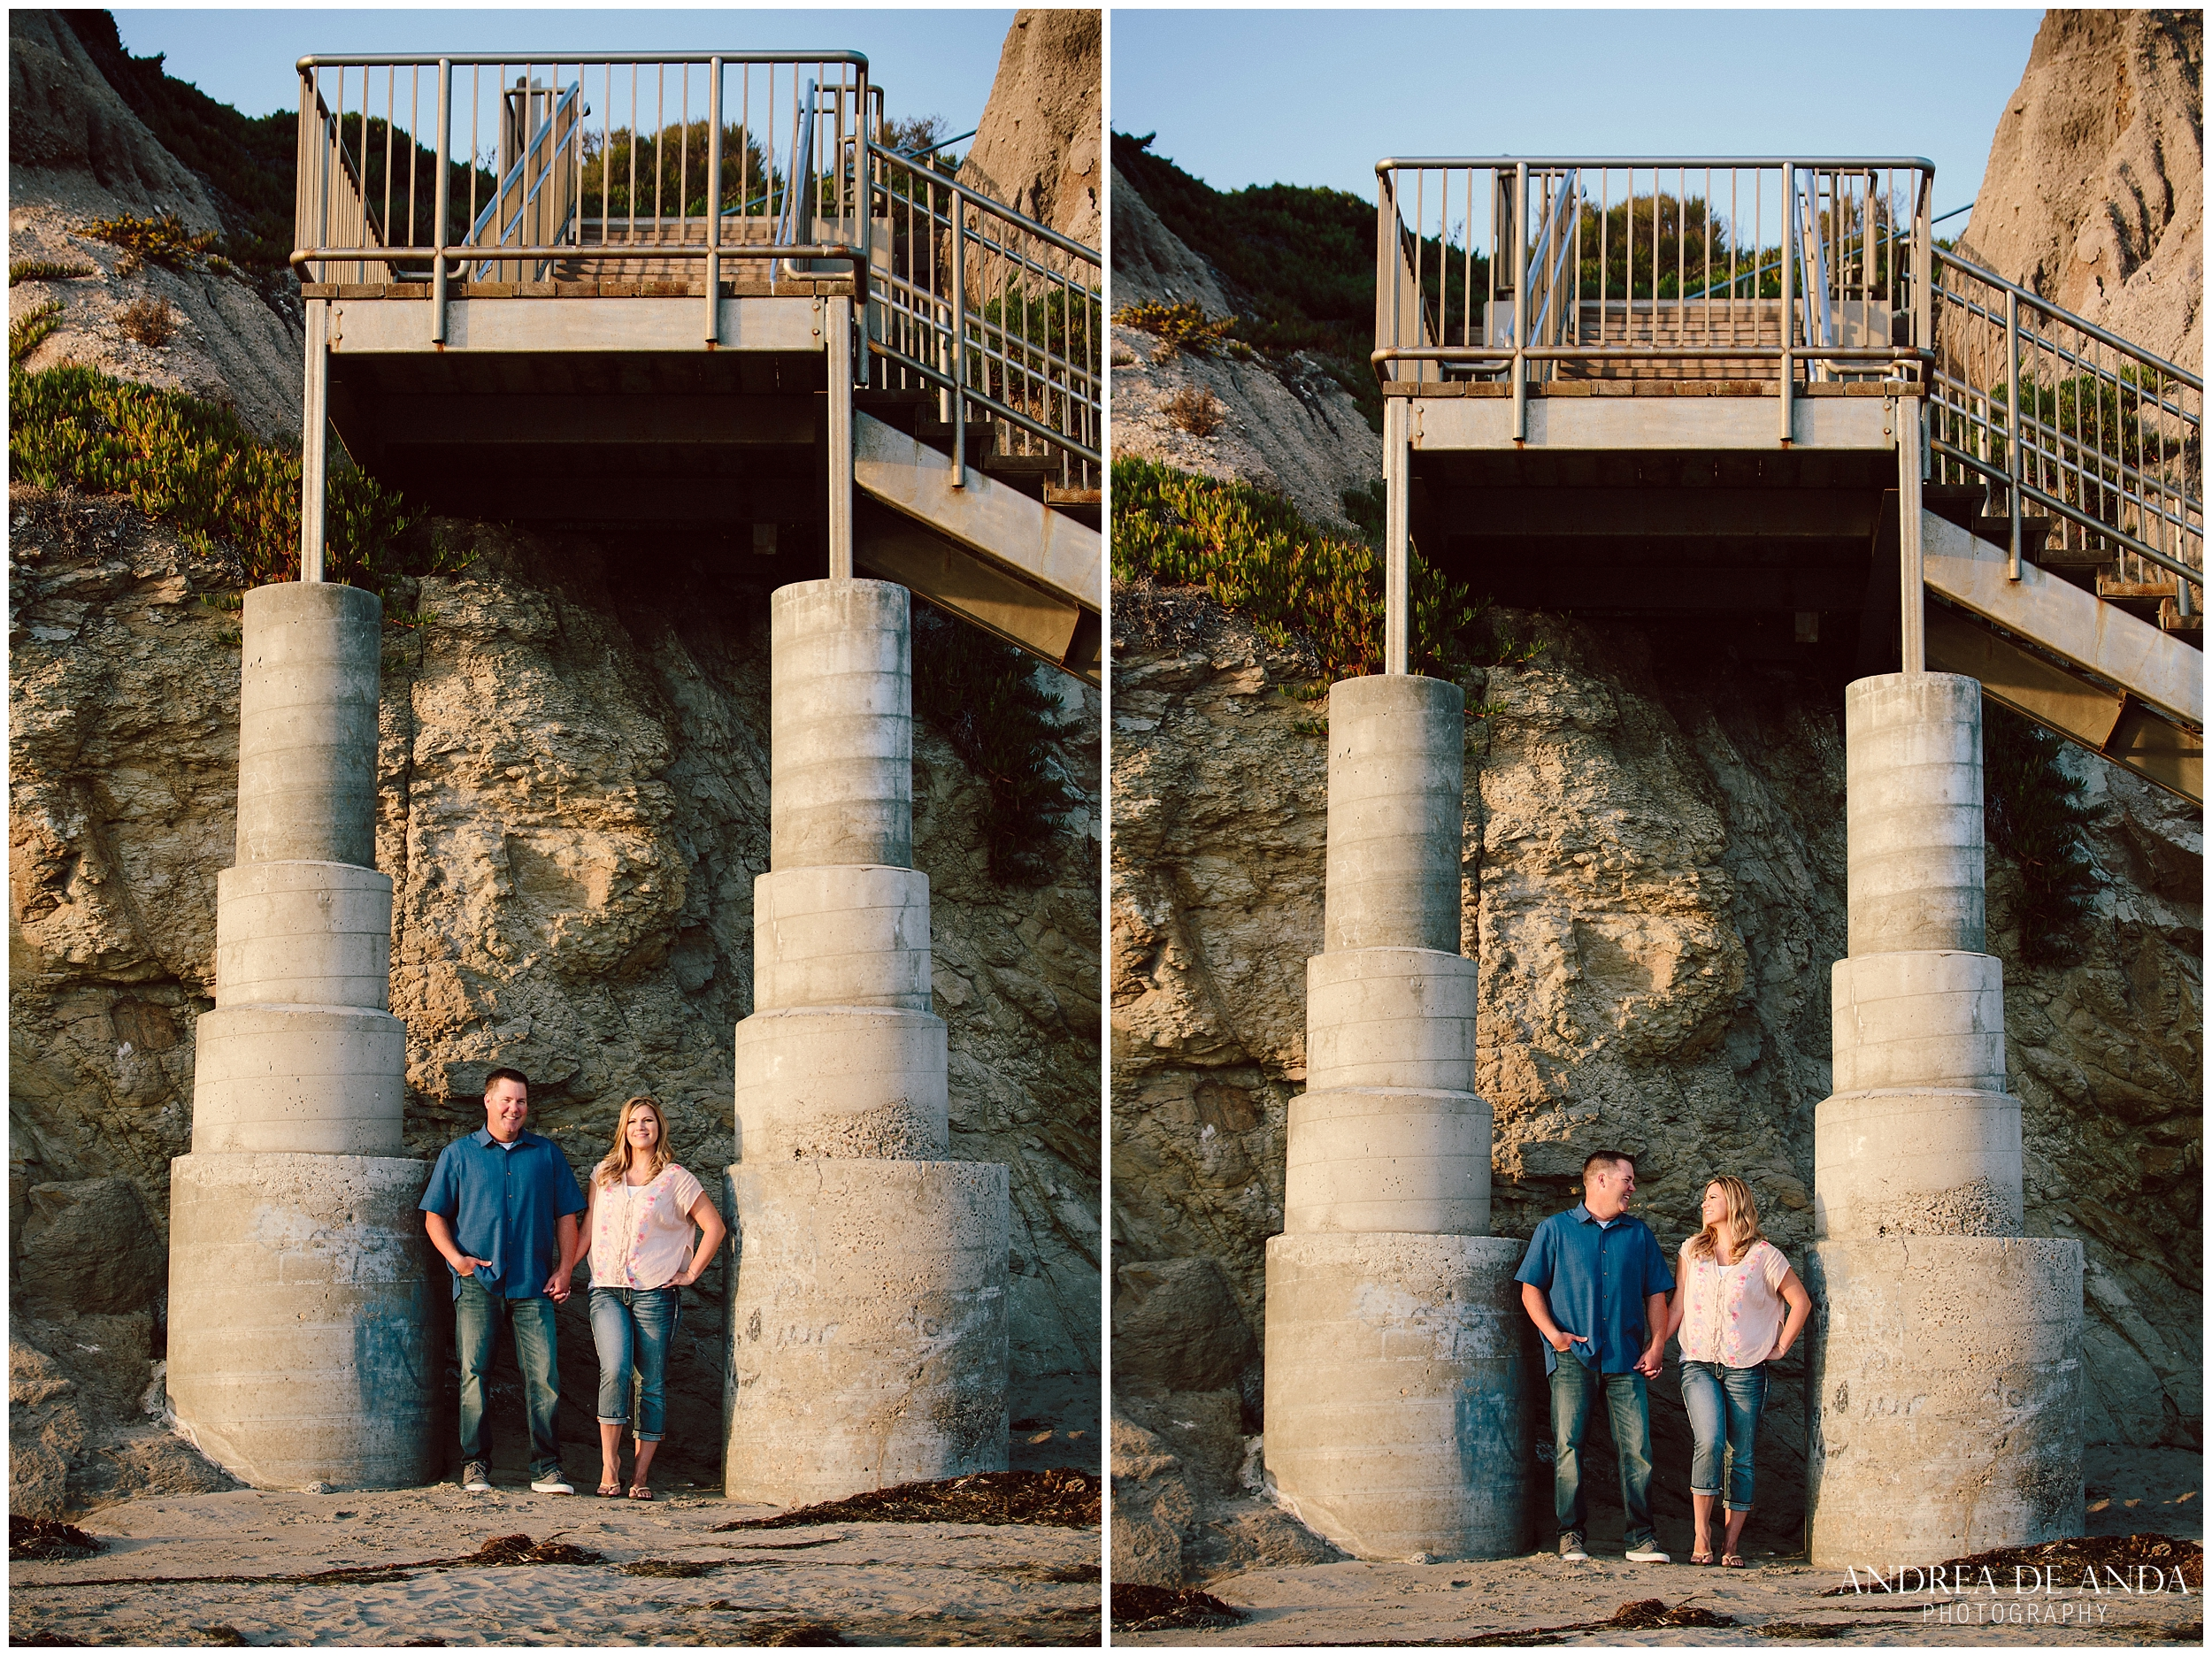 Bay area beach engagement session by Andrea de Anda Photography__0003.jpg